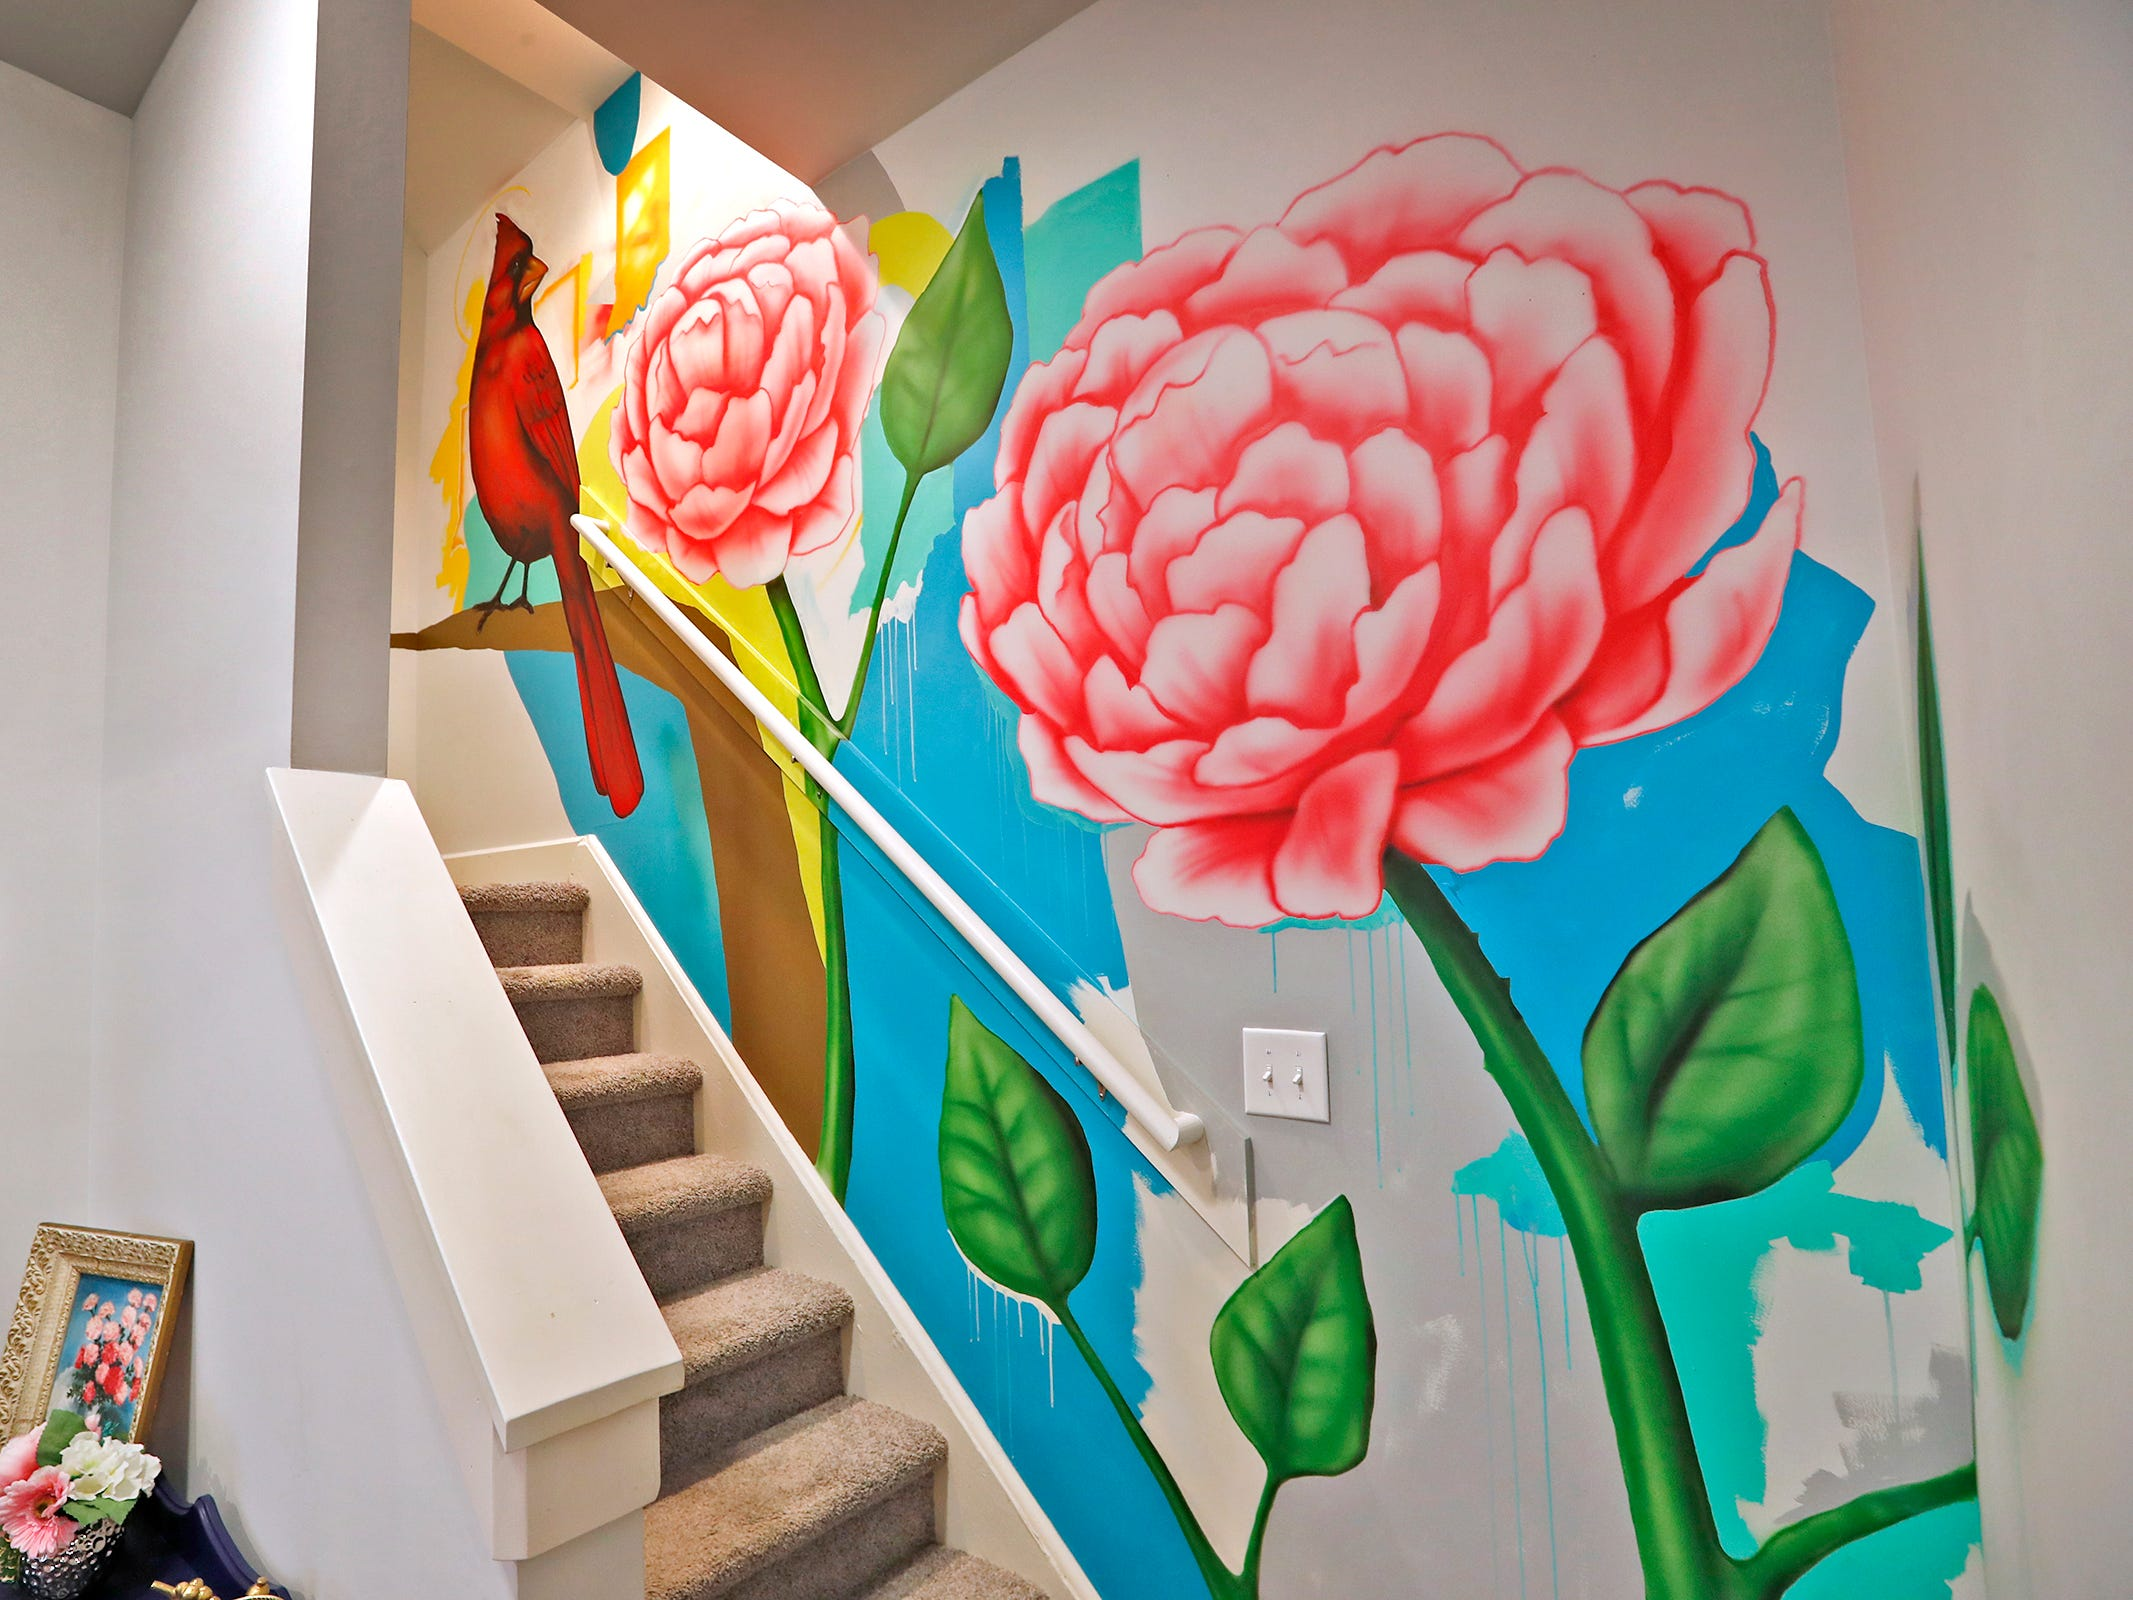 AirBnb owner Felicia Kiesel loves Indianapolis and uses items throughout the rental that remember the city, at 804 N. Keystone Ave., Monday, Dec. 3, 2018, including this mural with the state bird, the cardinal, and flower, the peony.